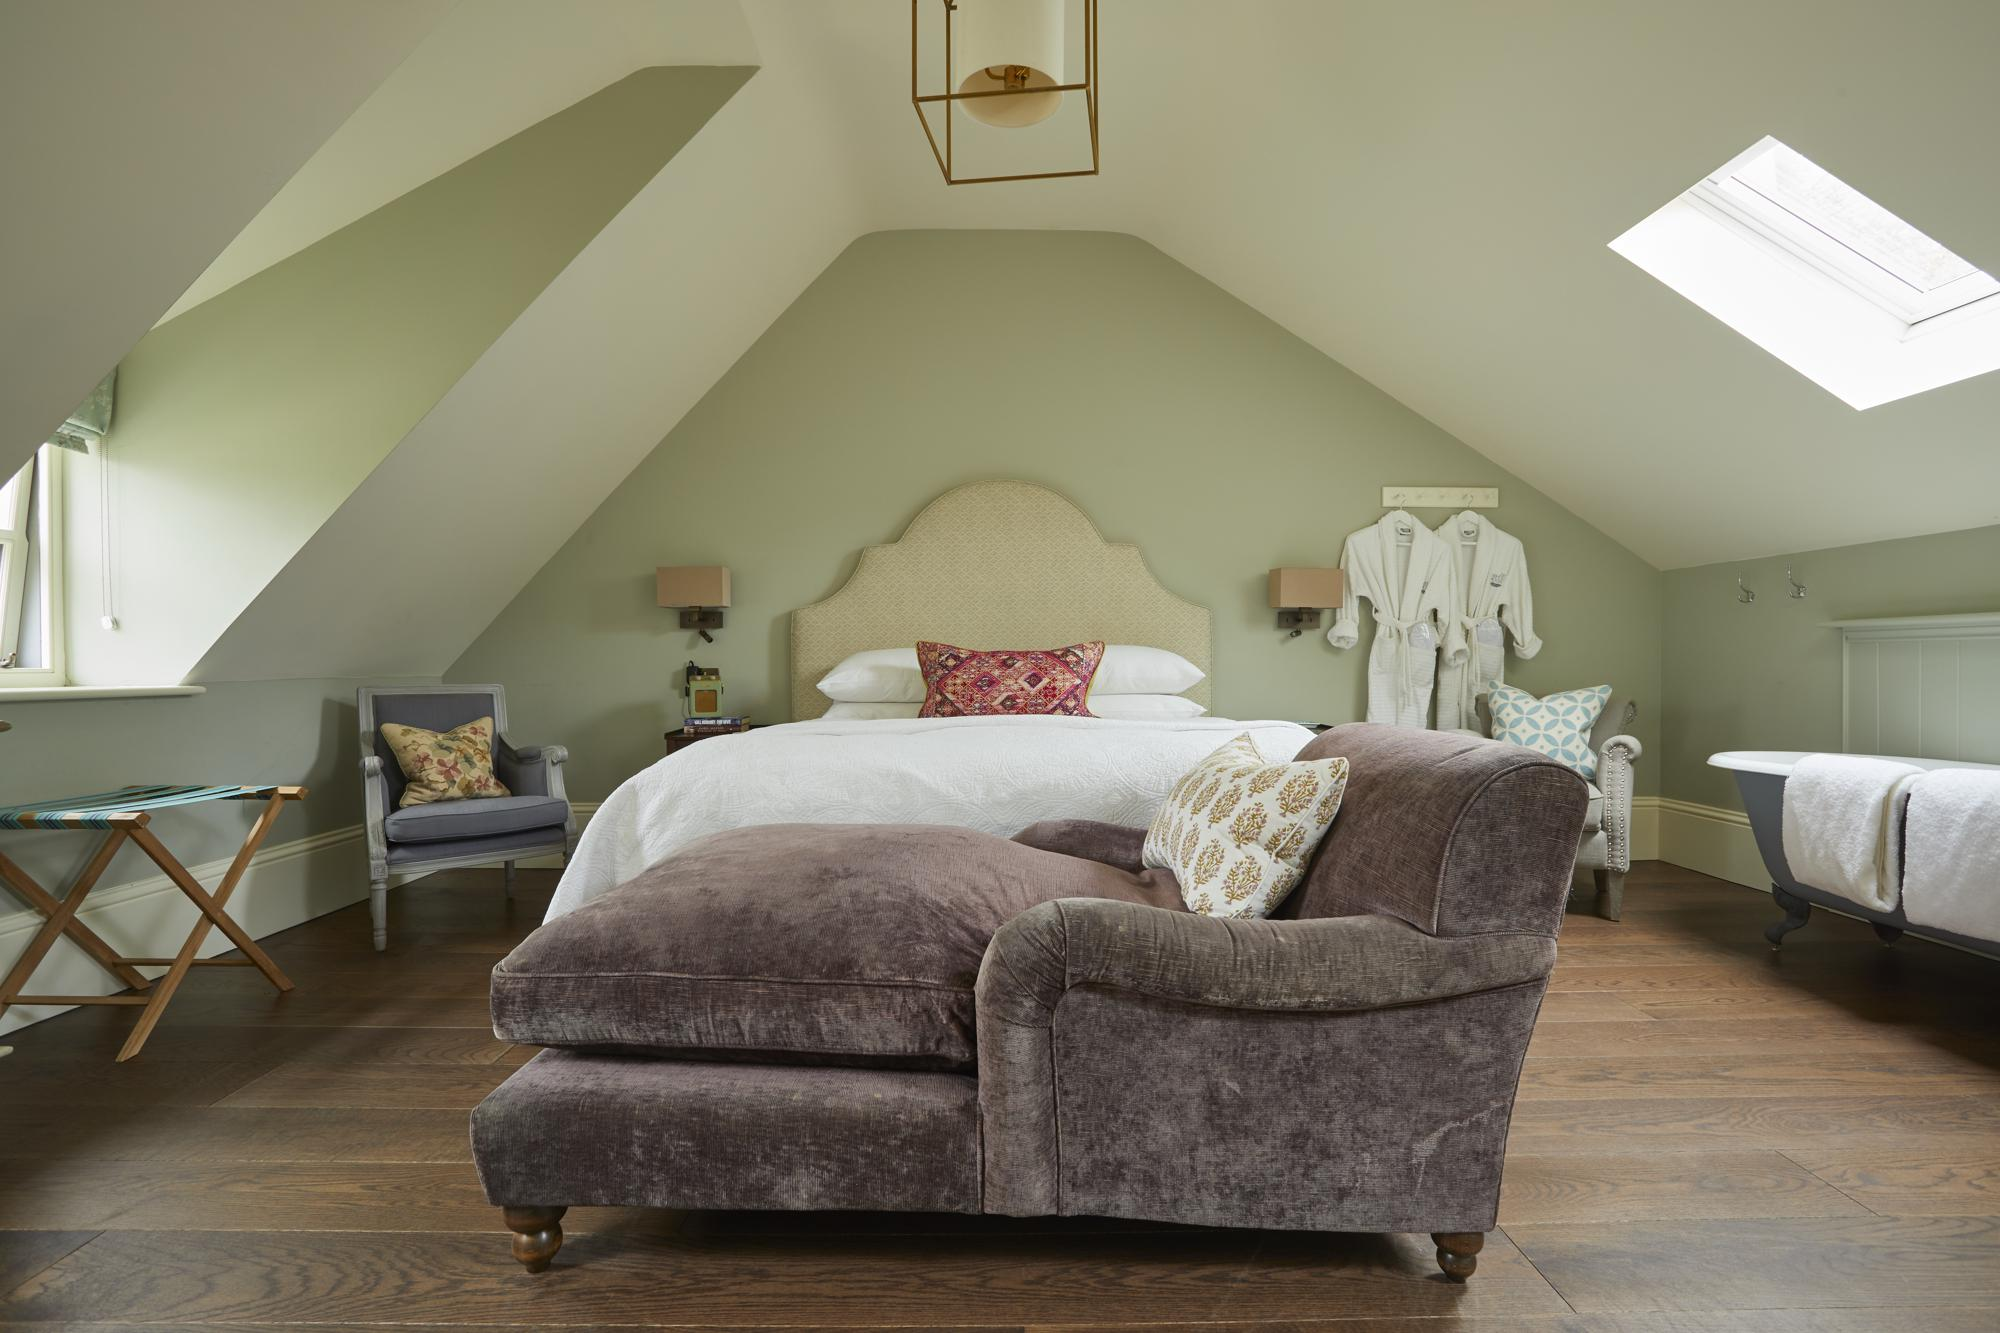 B&Bs in Norfolk holidays at Cool Places